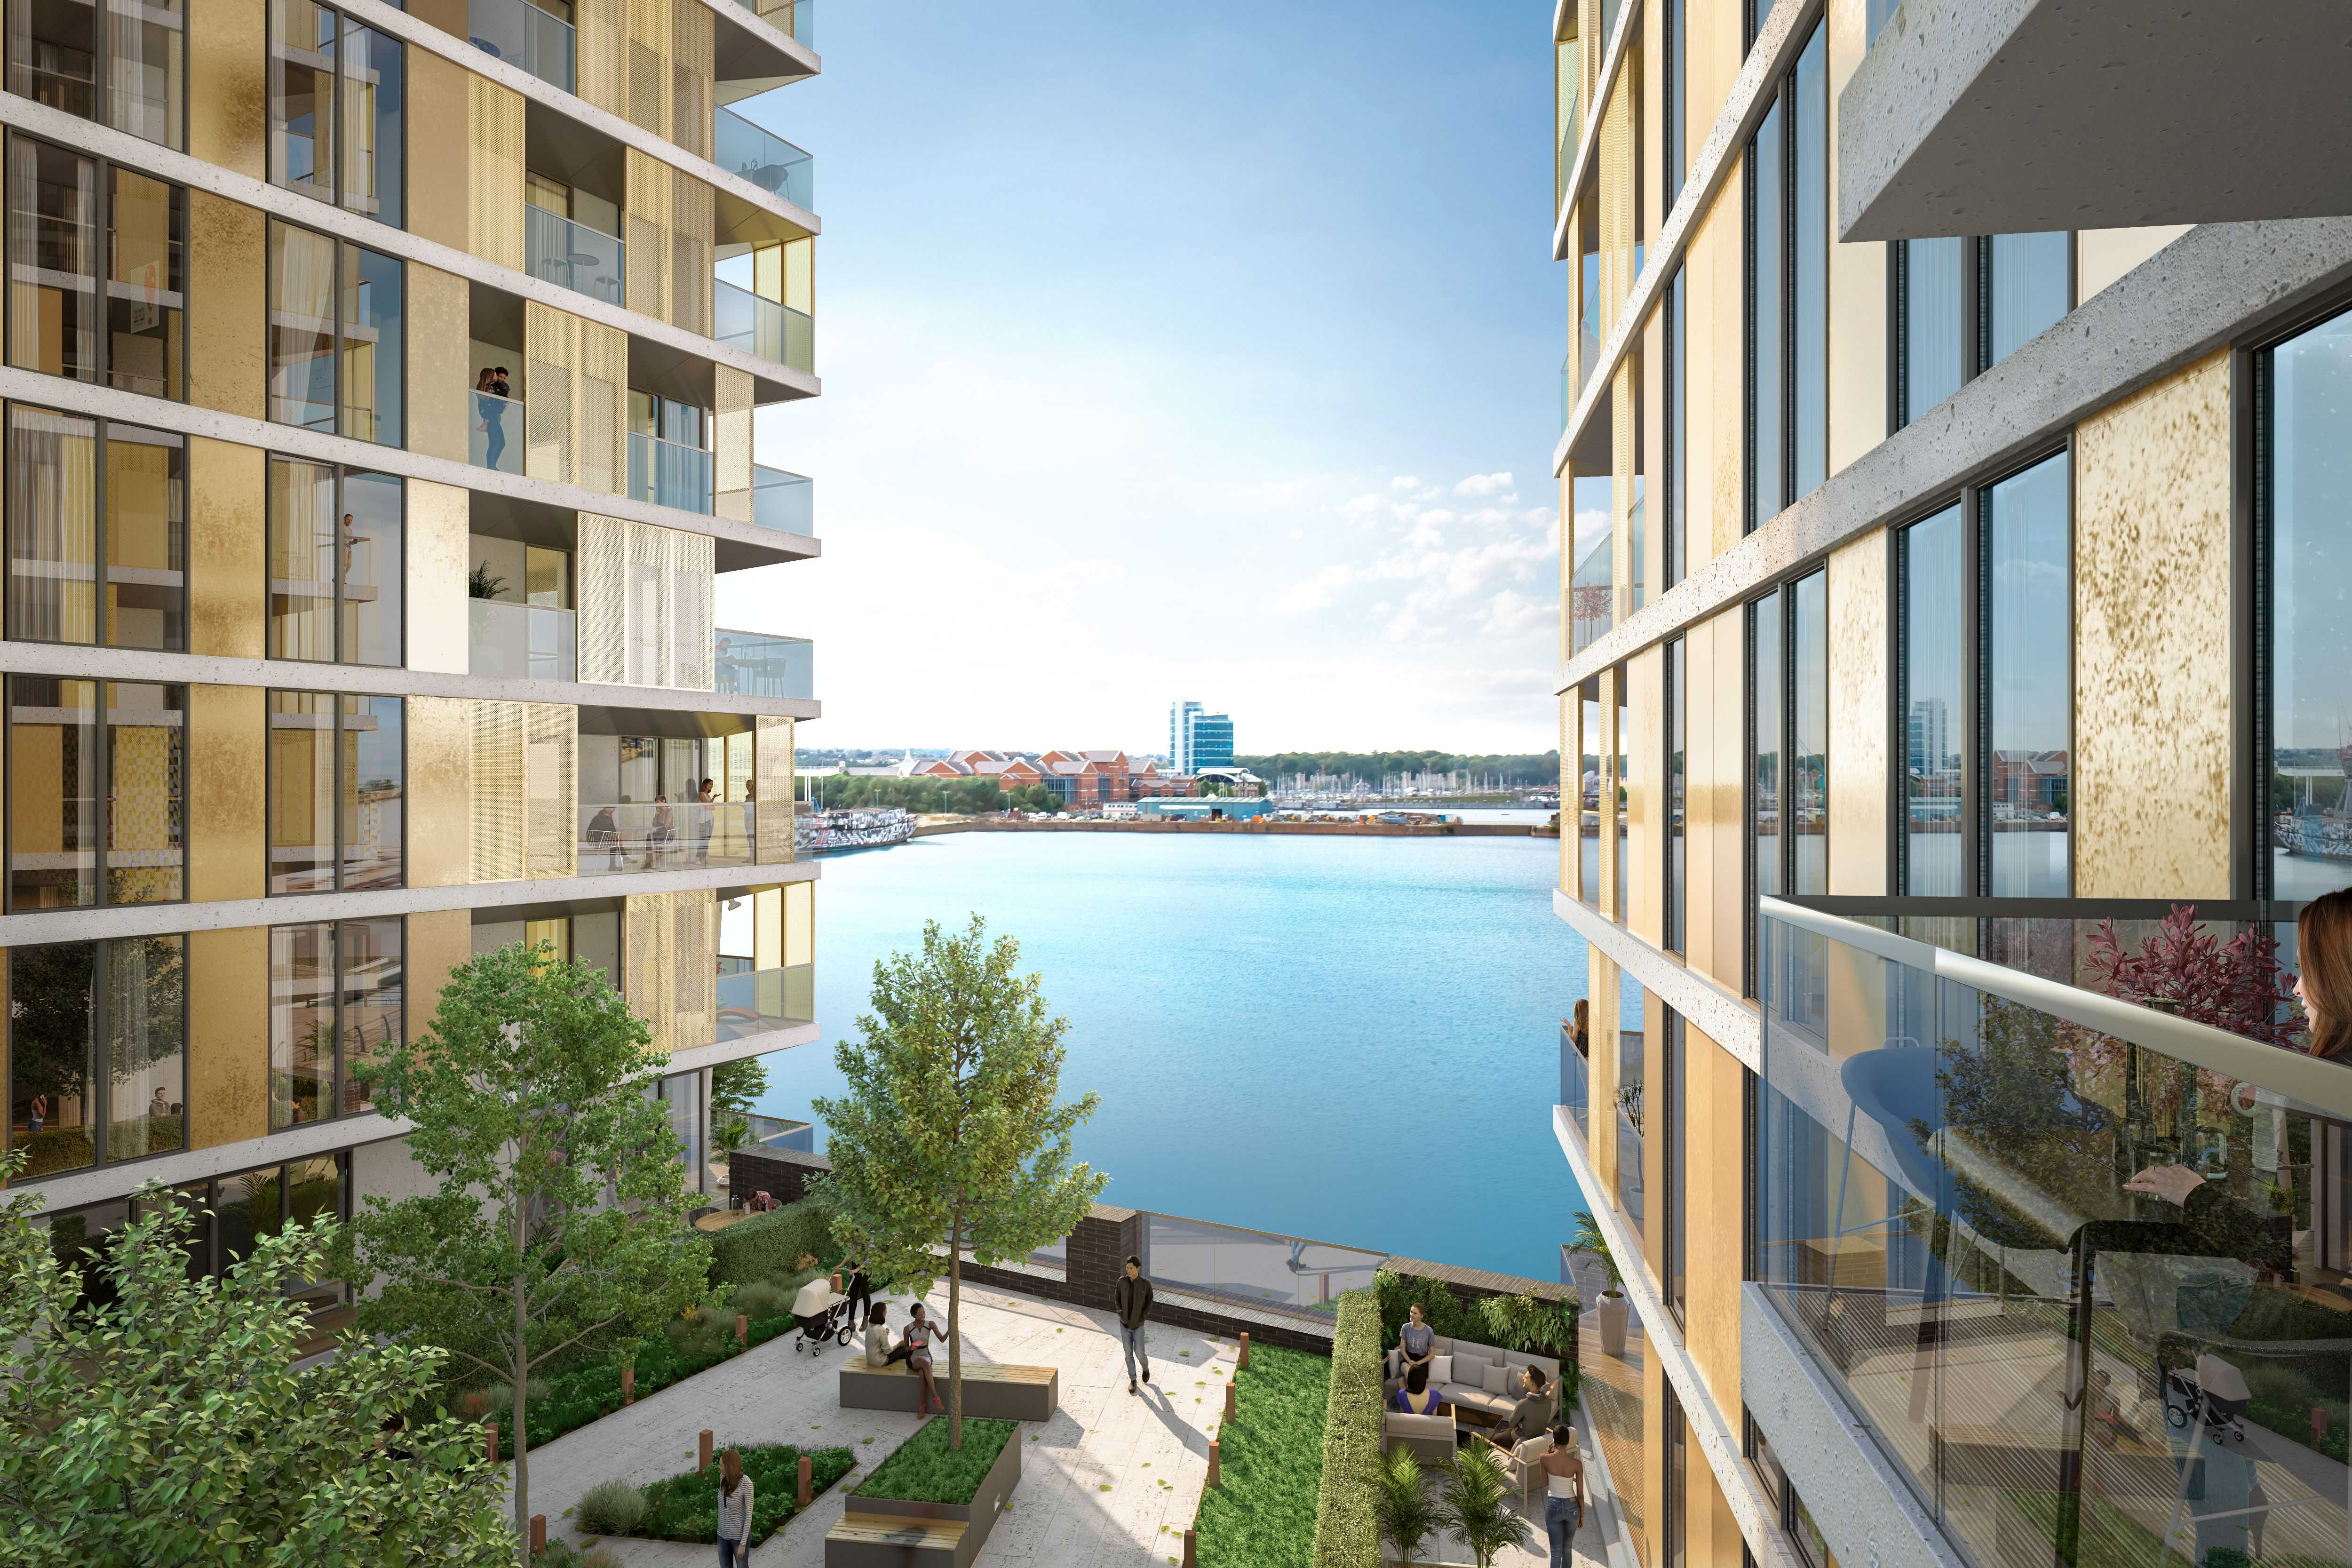 1 bed flat for sale in Chatham Waters Pier Approach Road, Gillingham, ME7